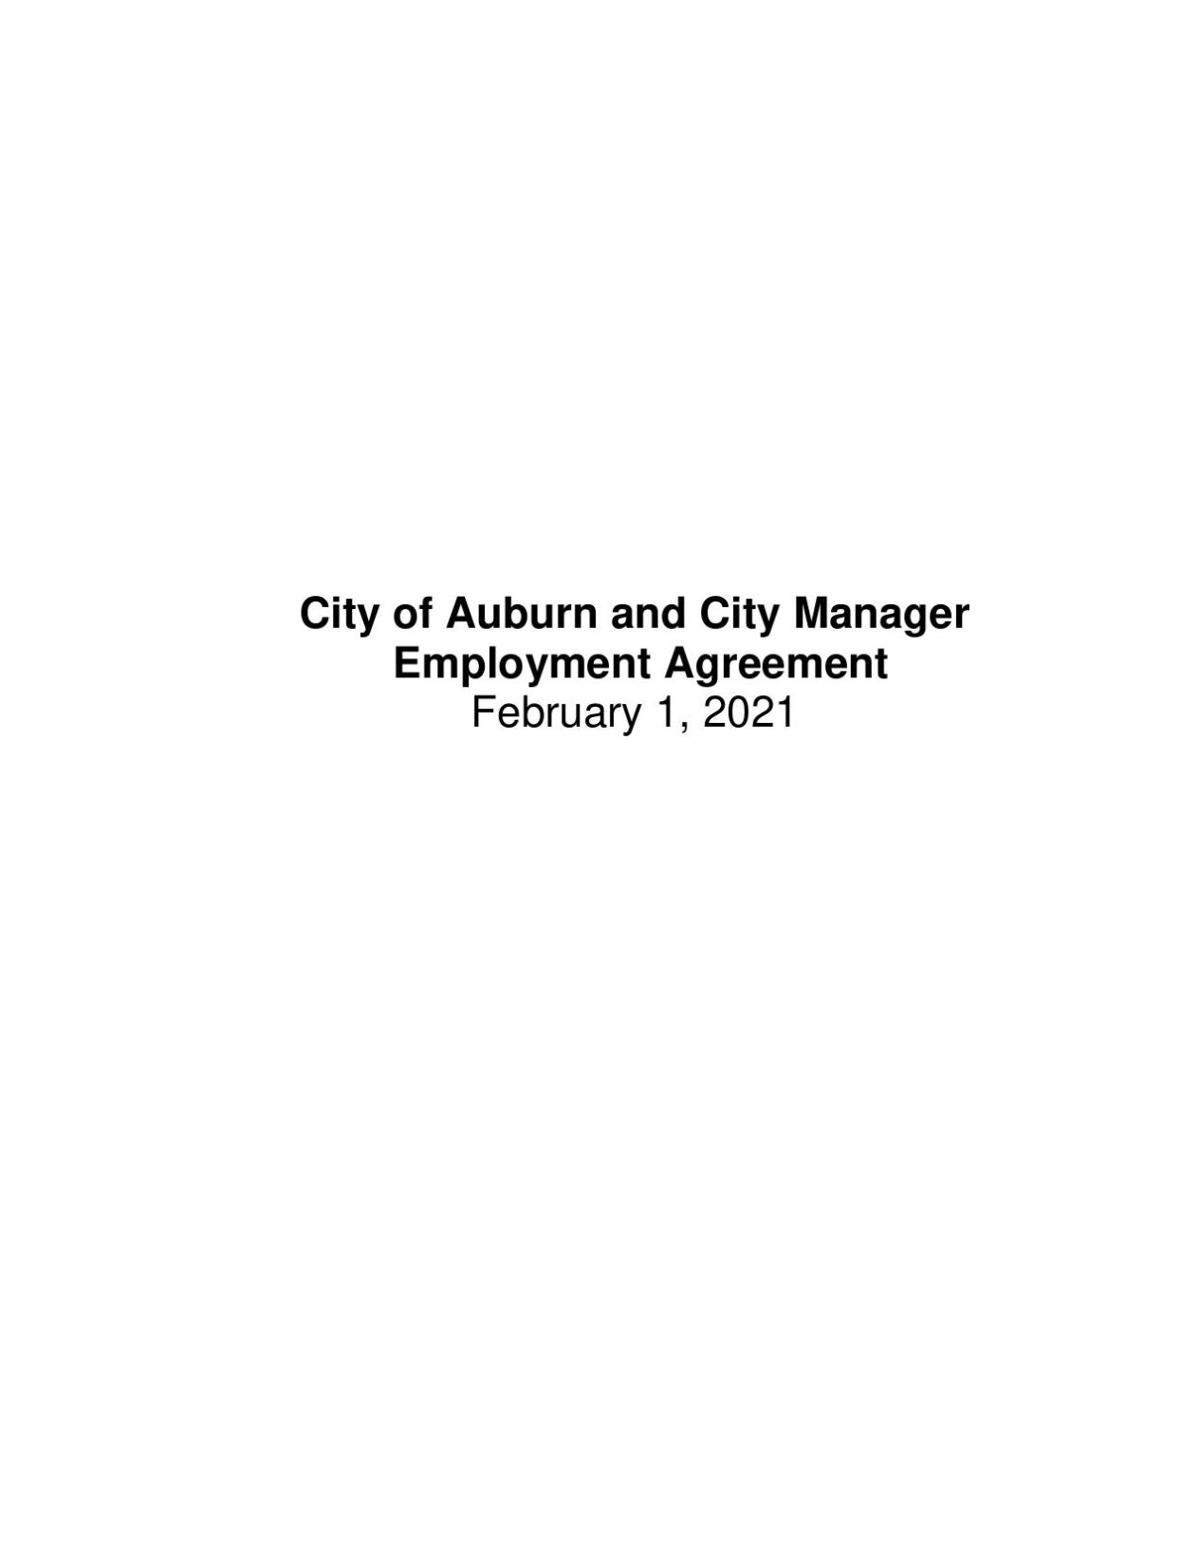 City Manager Contract